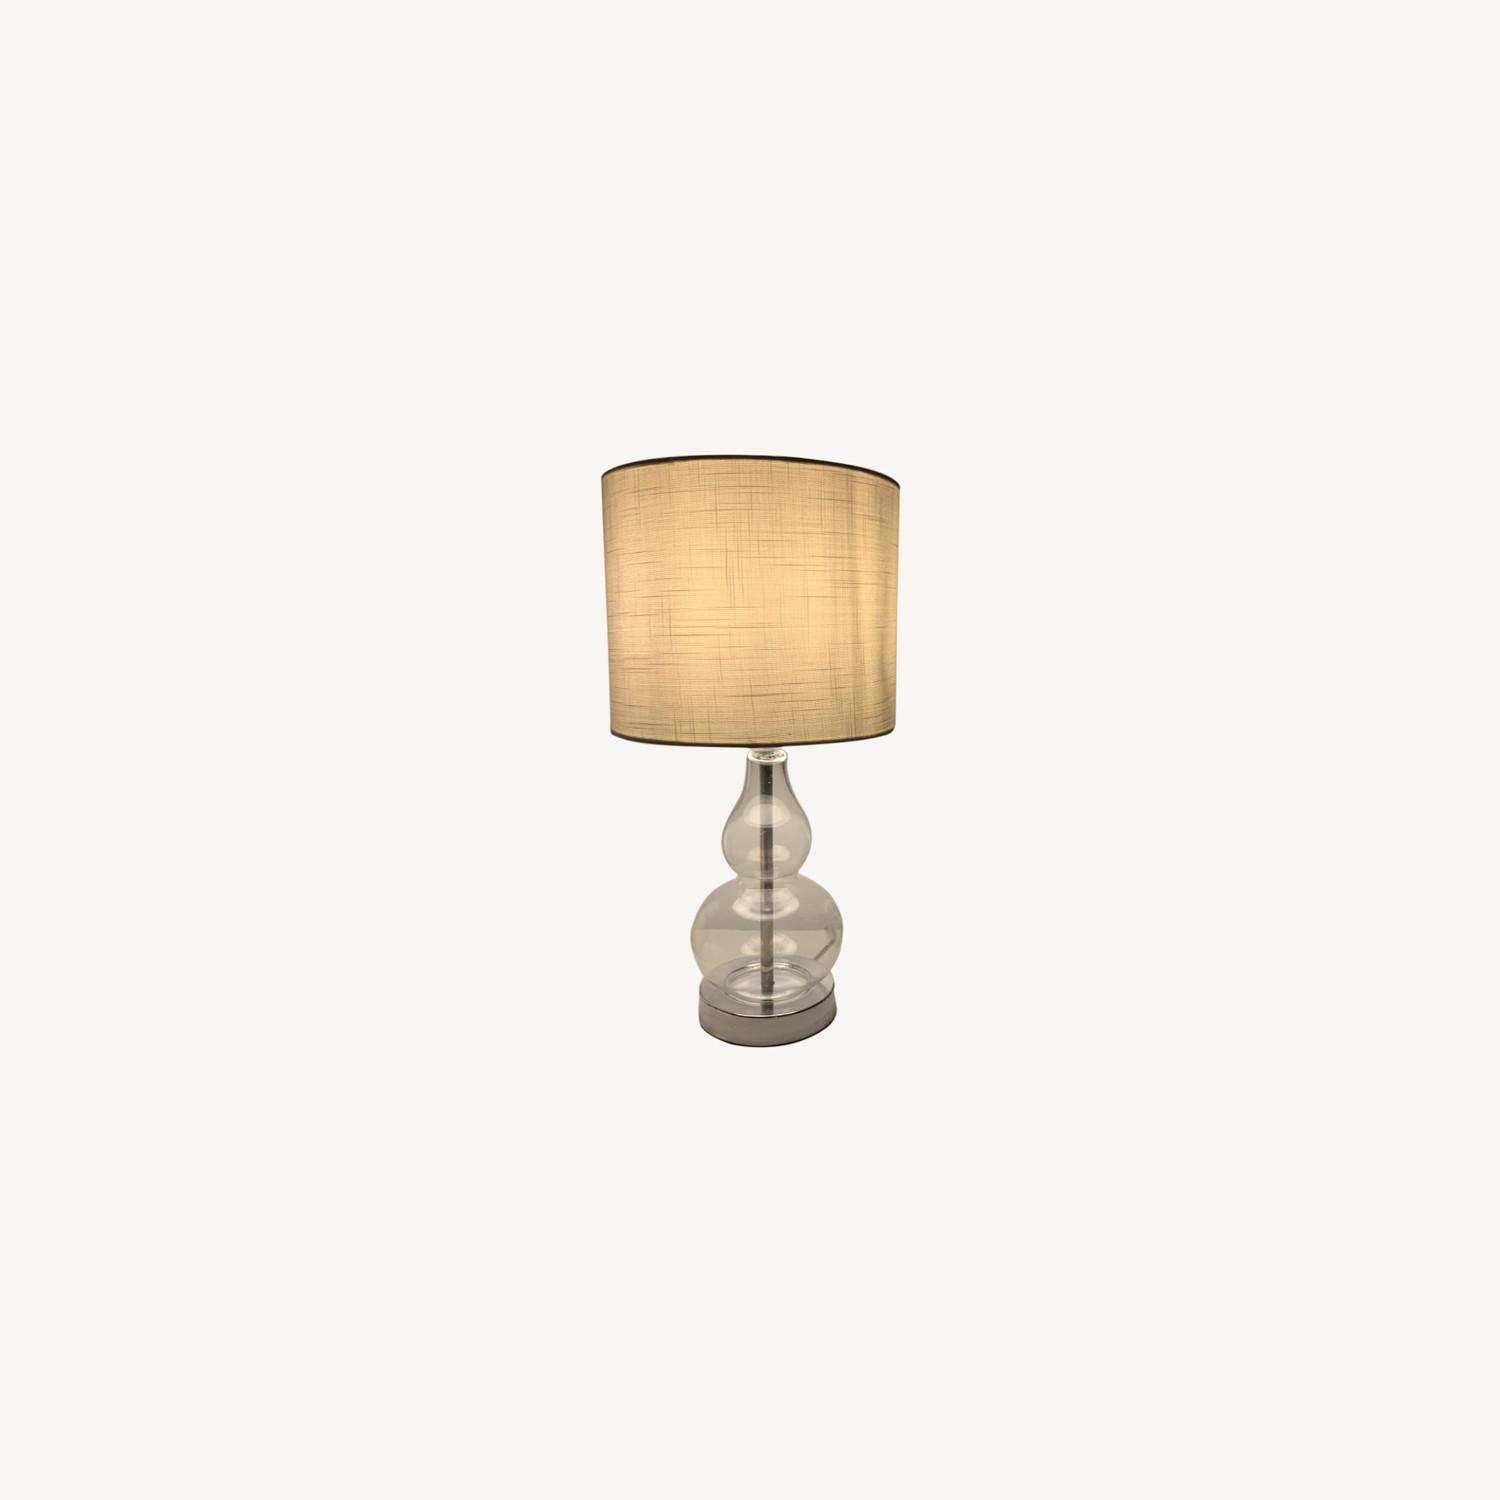 Houzz Two Glass and White Fabric Table Lamps - image-0